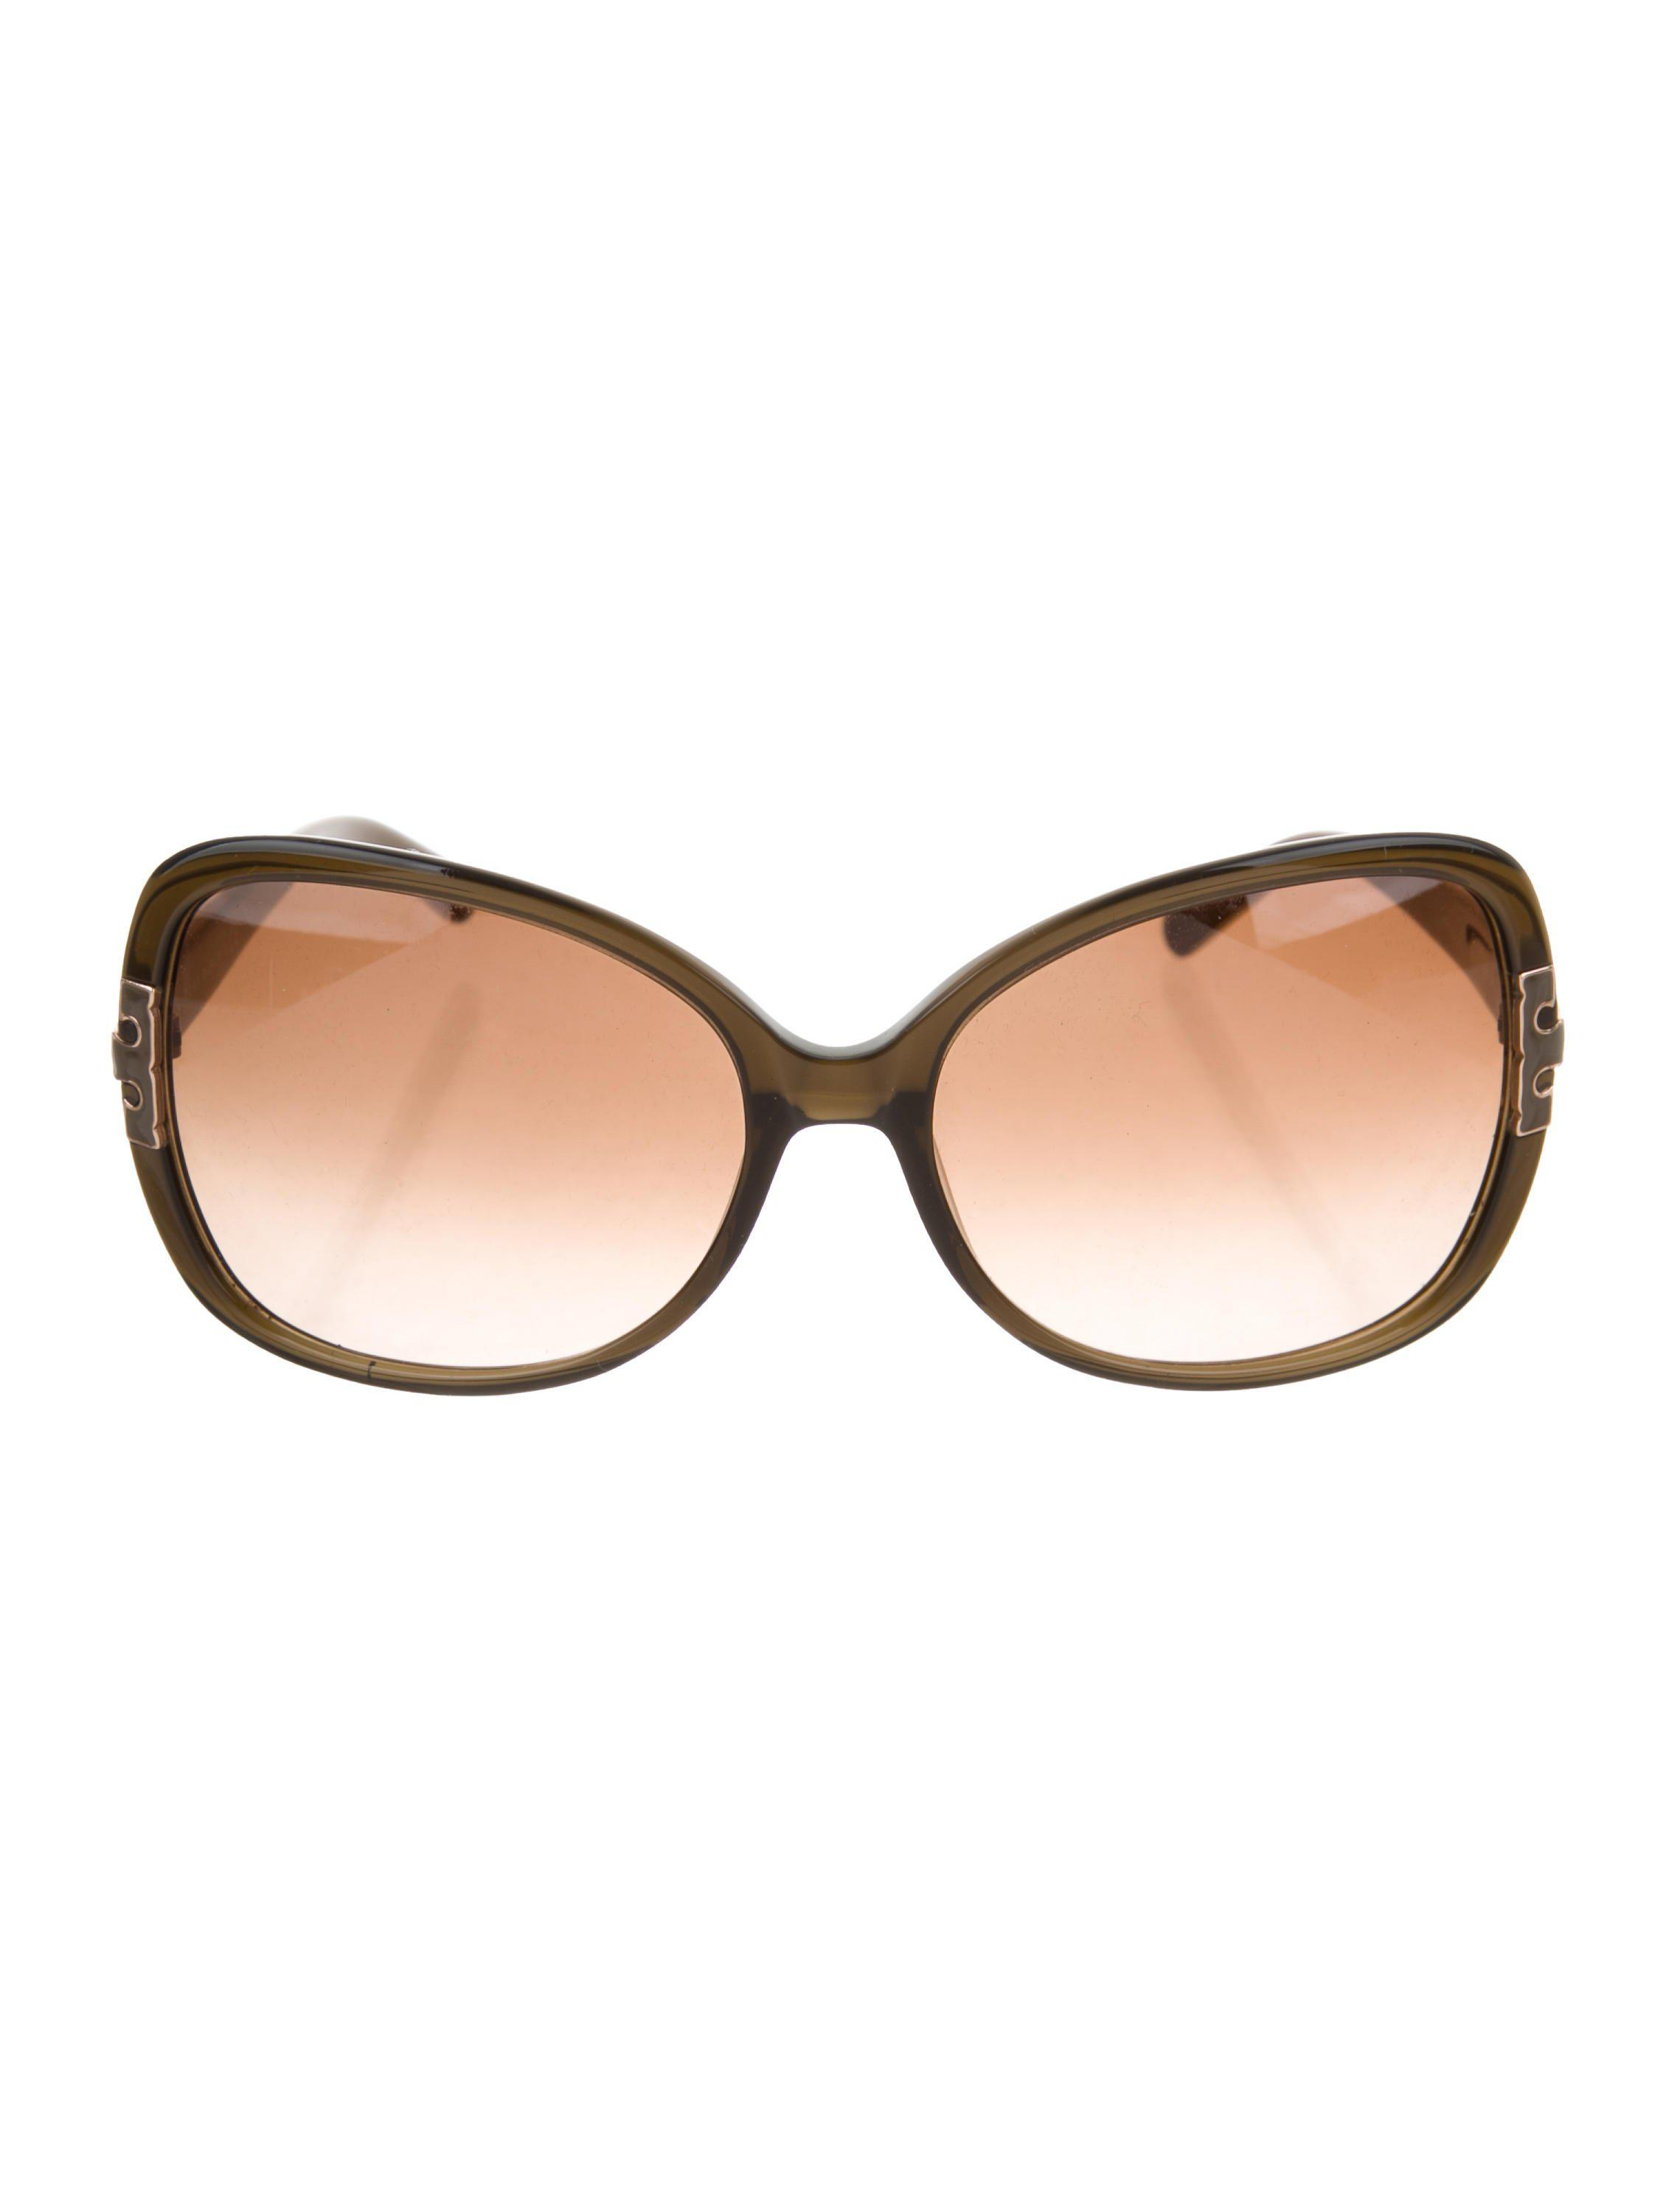 fd5224d5b9 Lyst - Tory Burch Oversize Tinted Sunglasses in Brown